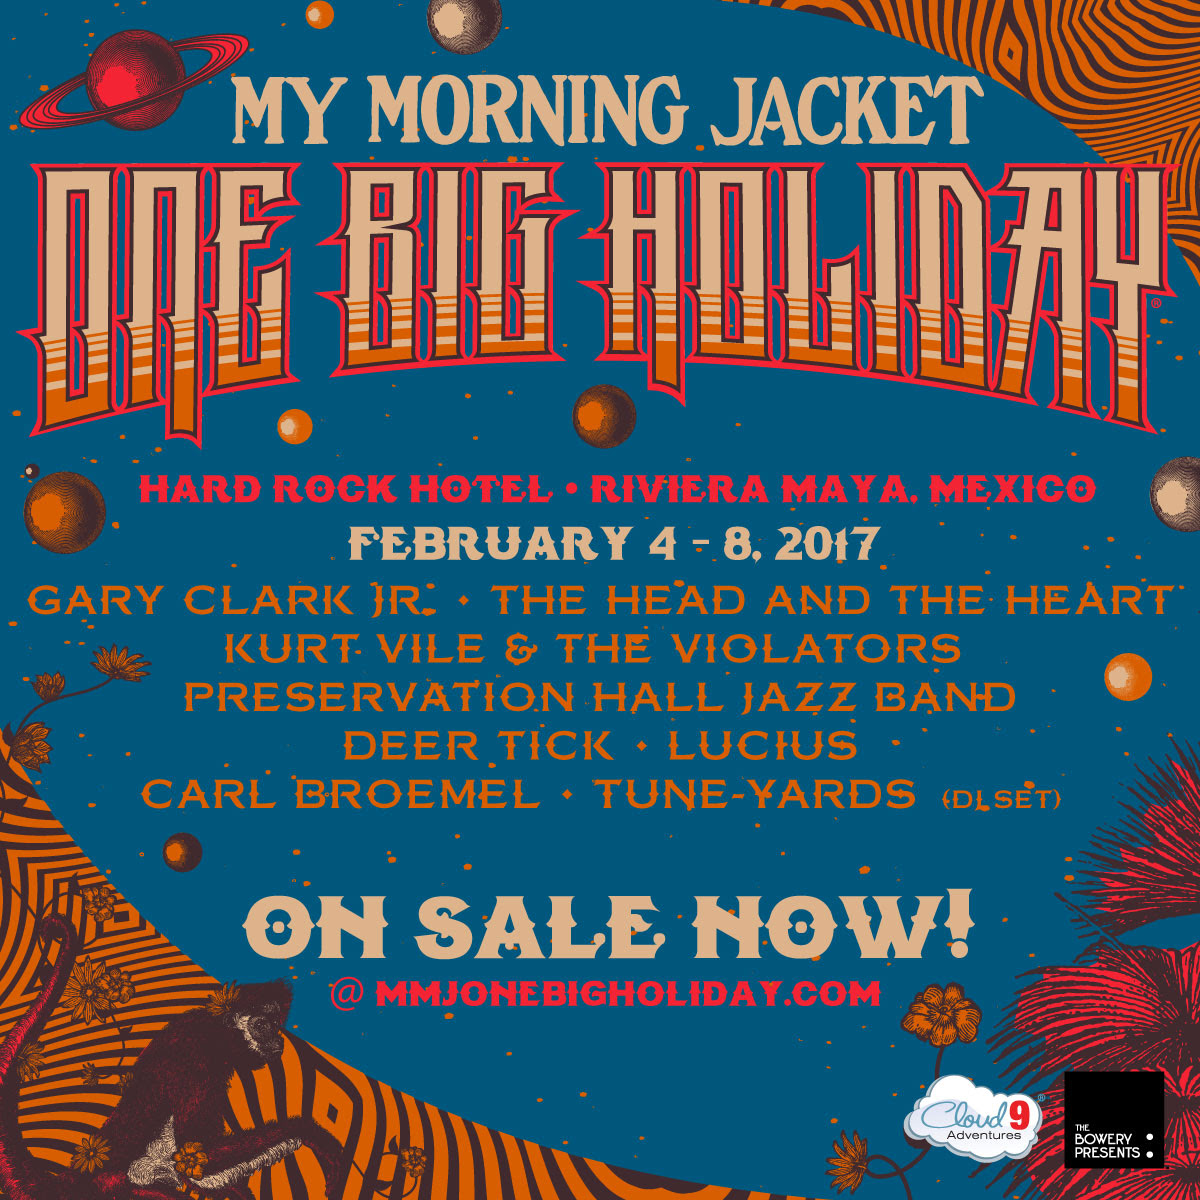 One Big Holiday 2017 with My Morning Jacket. Photo provided.